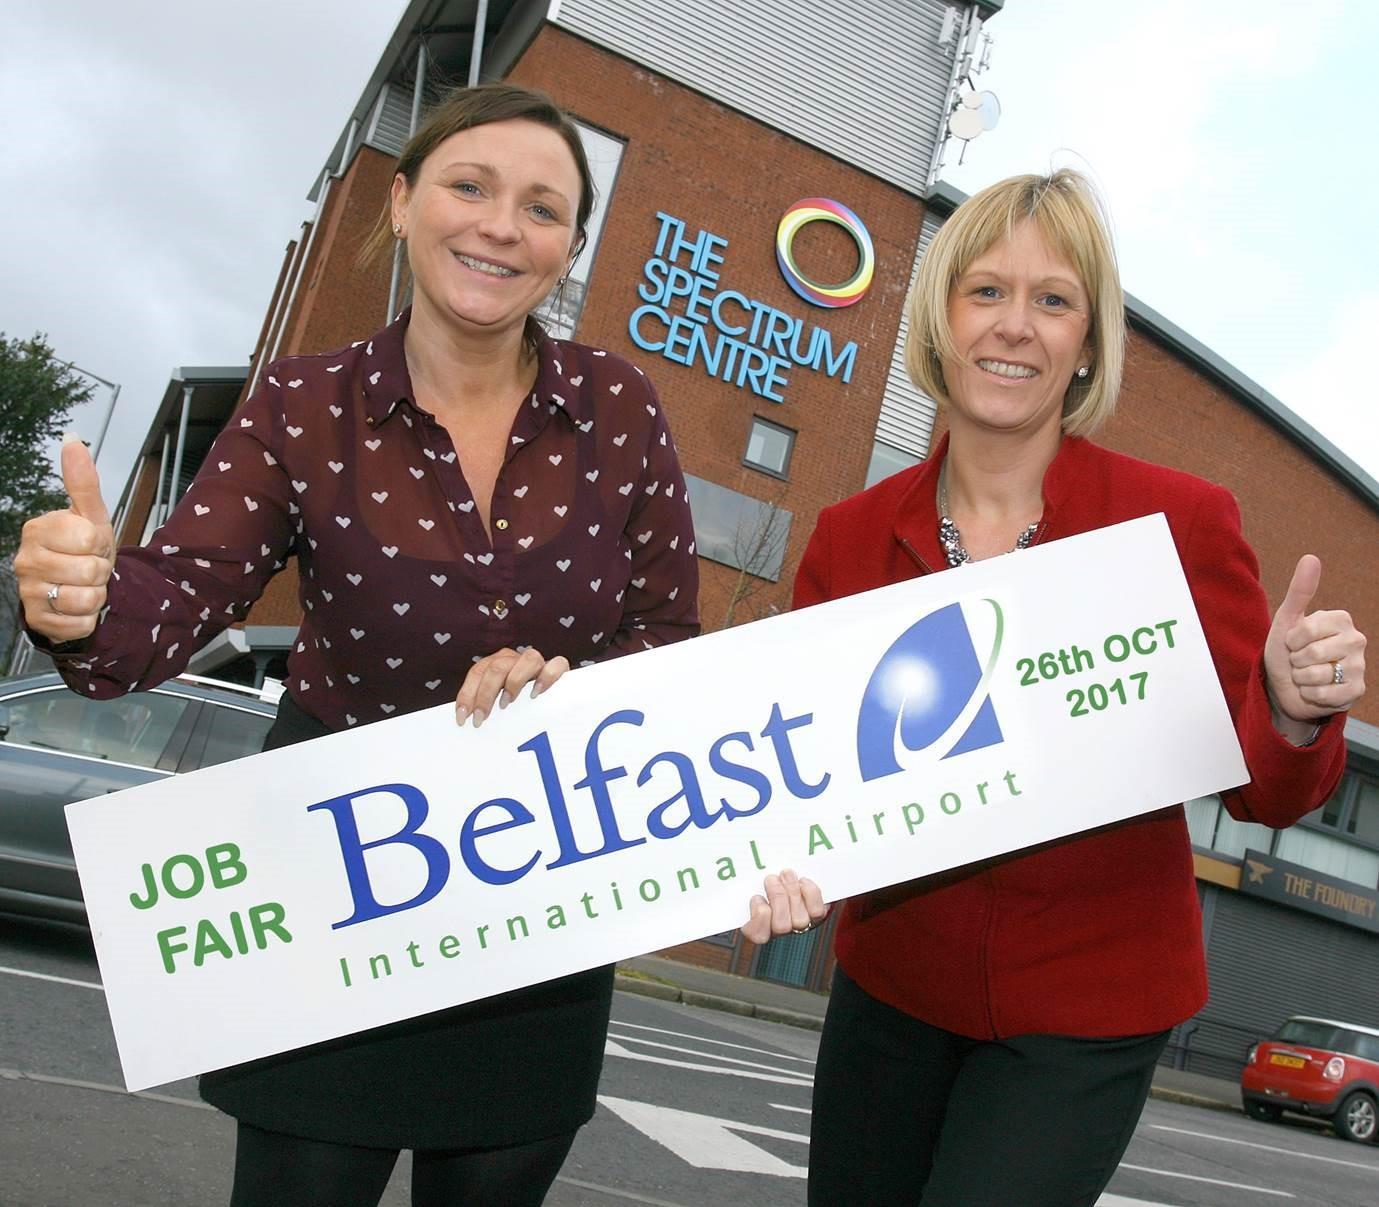 More than 100 airport jobs on offer at Shankill Job Fair